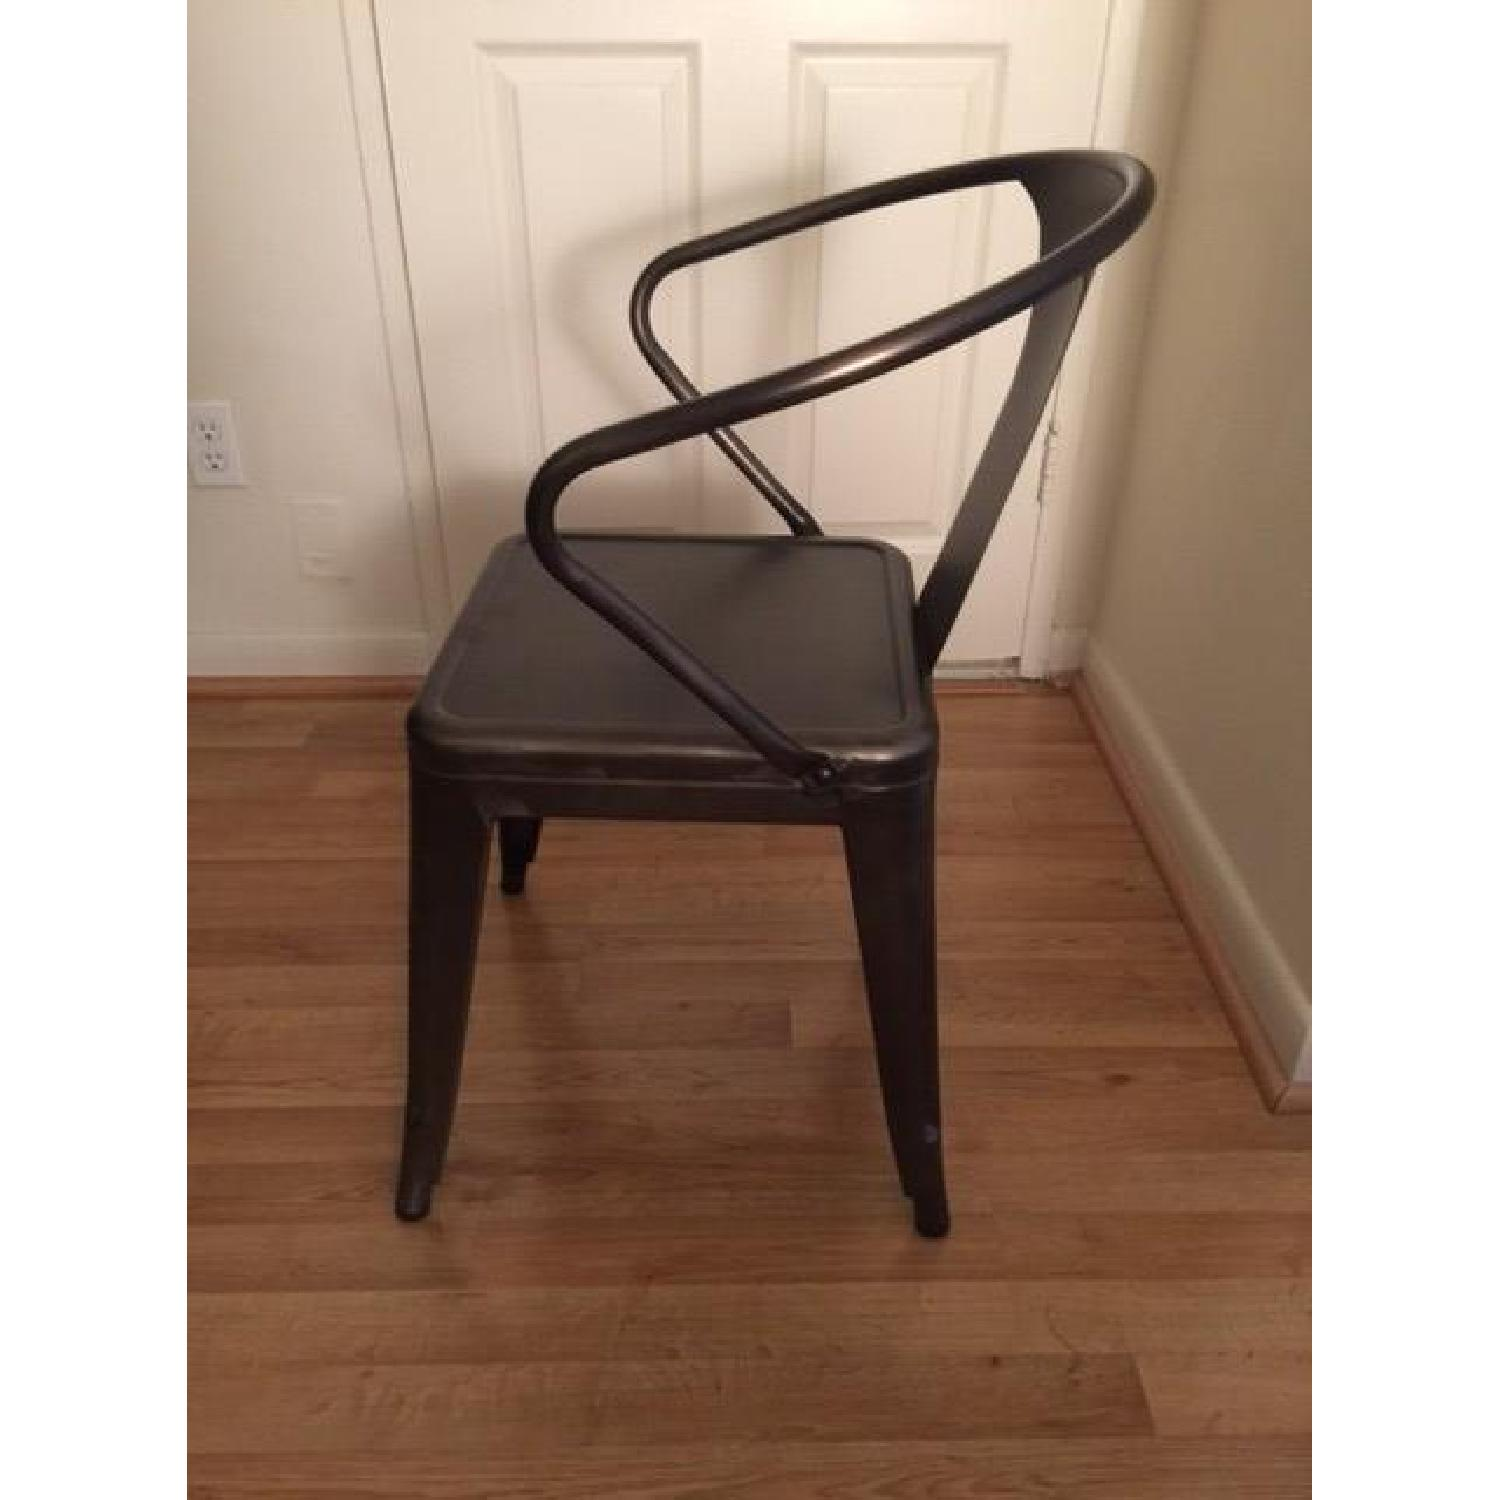 Vintage Tabouret Stacking Chairs - image-2